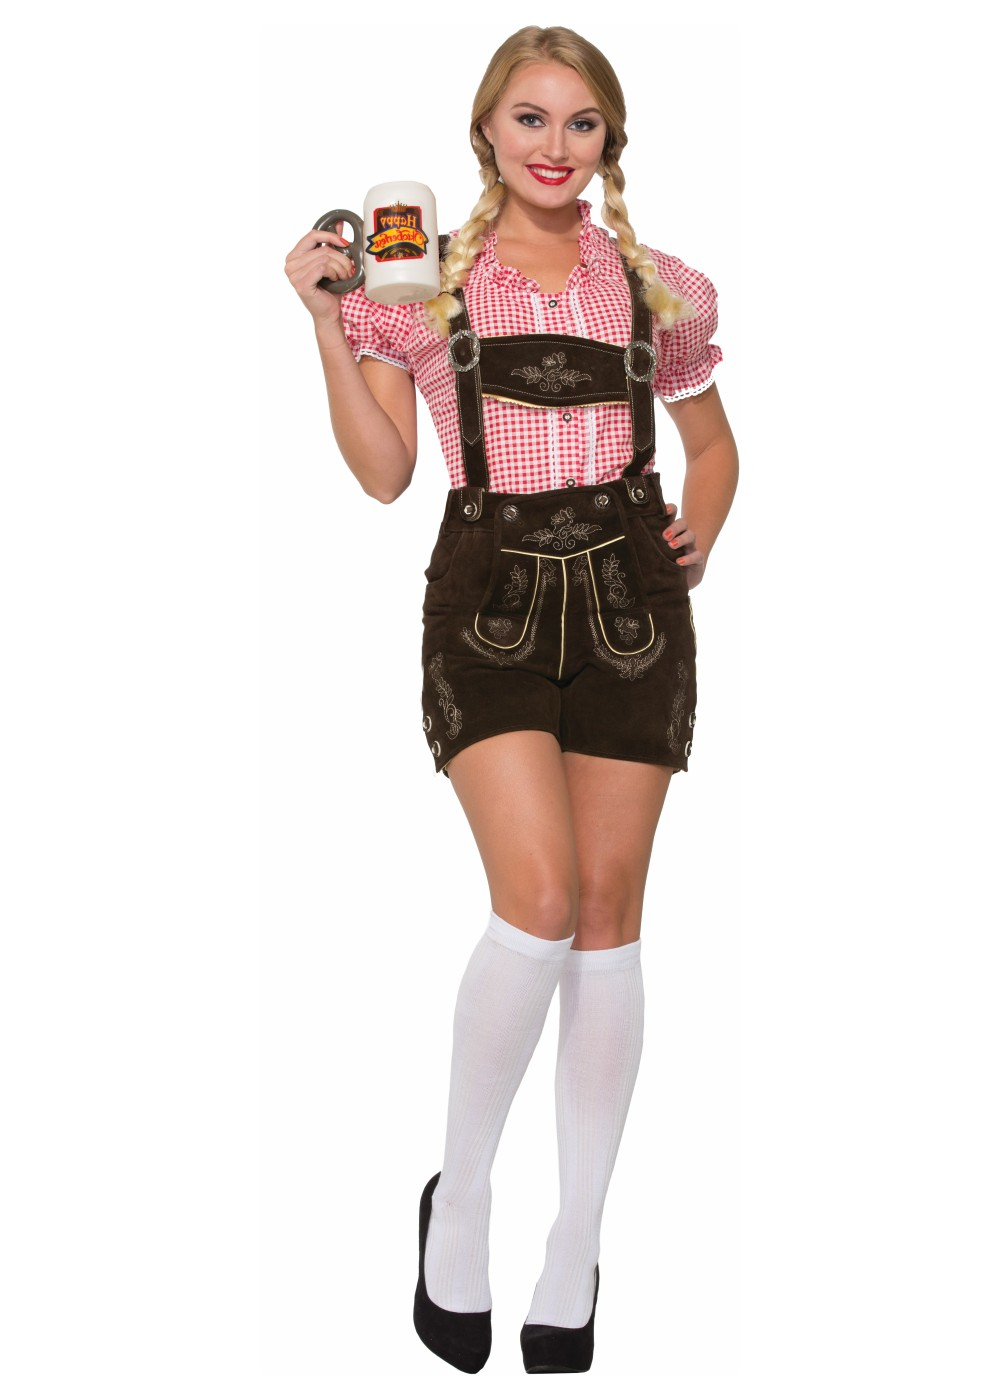 Girls In Lederhosen